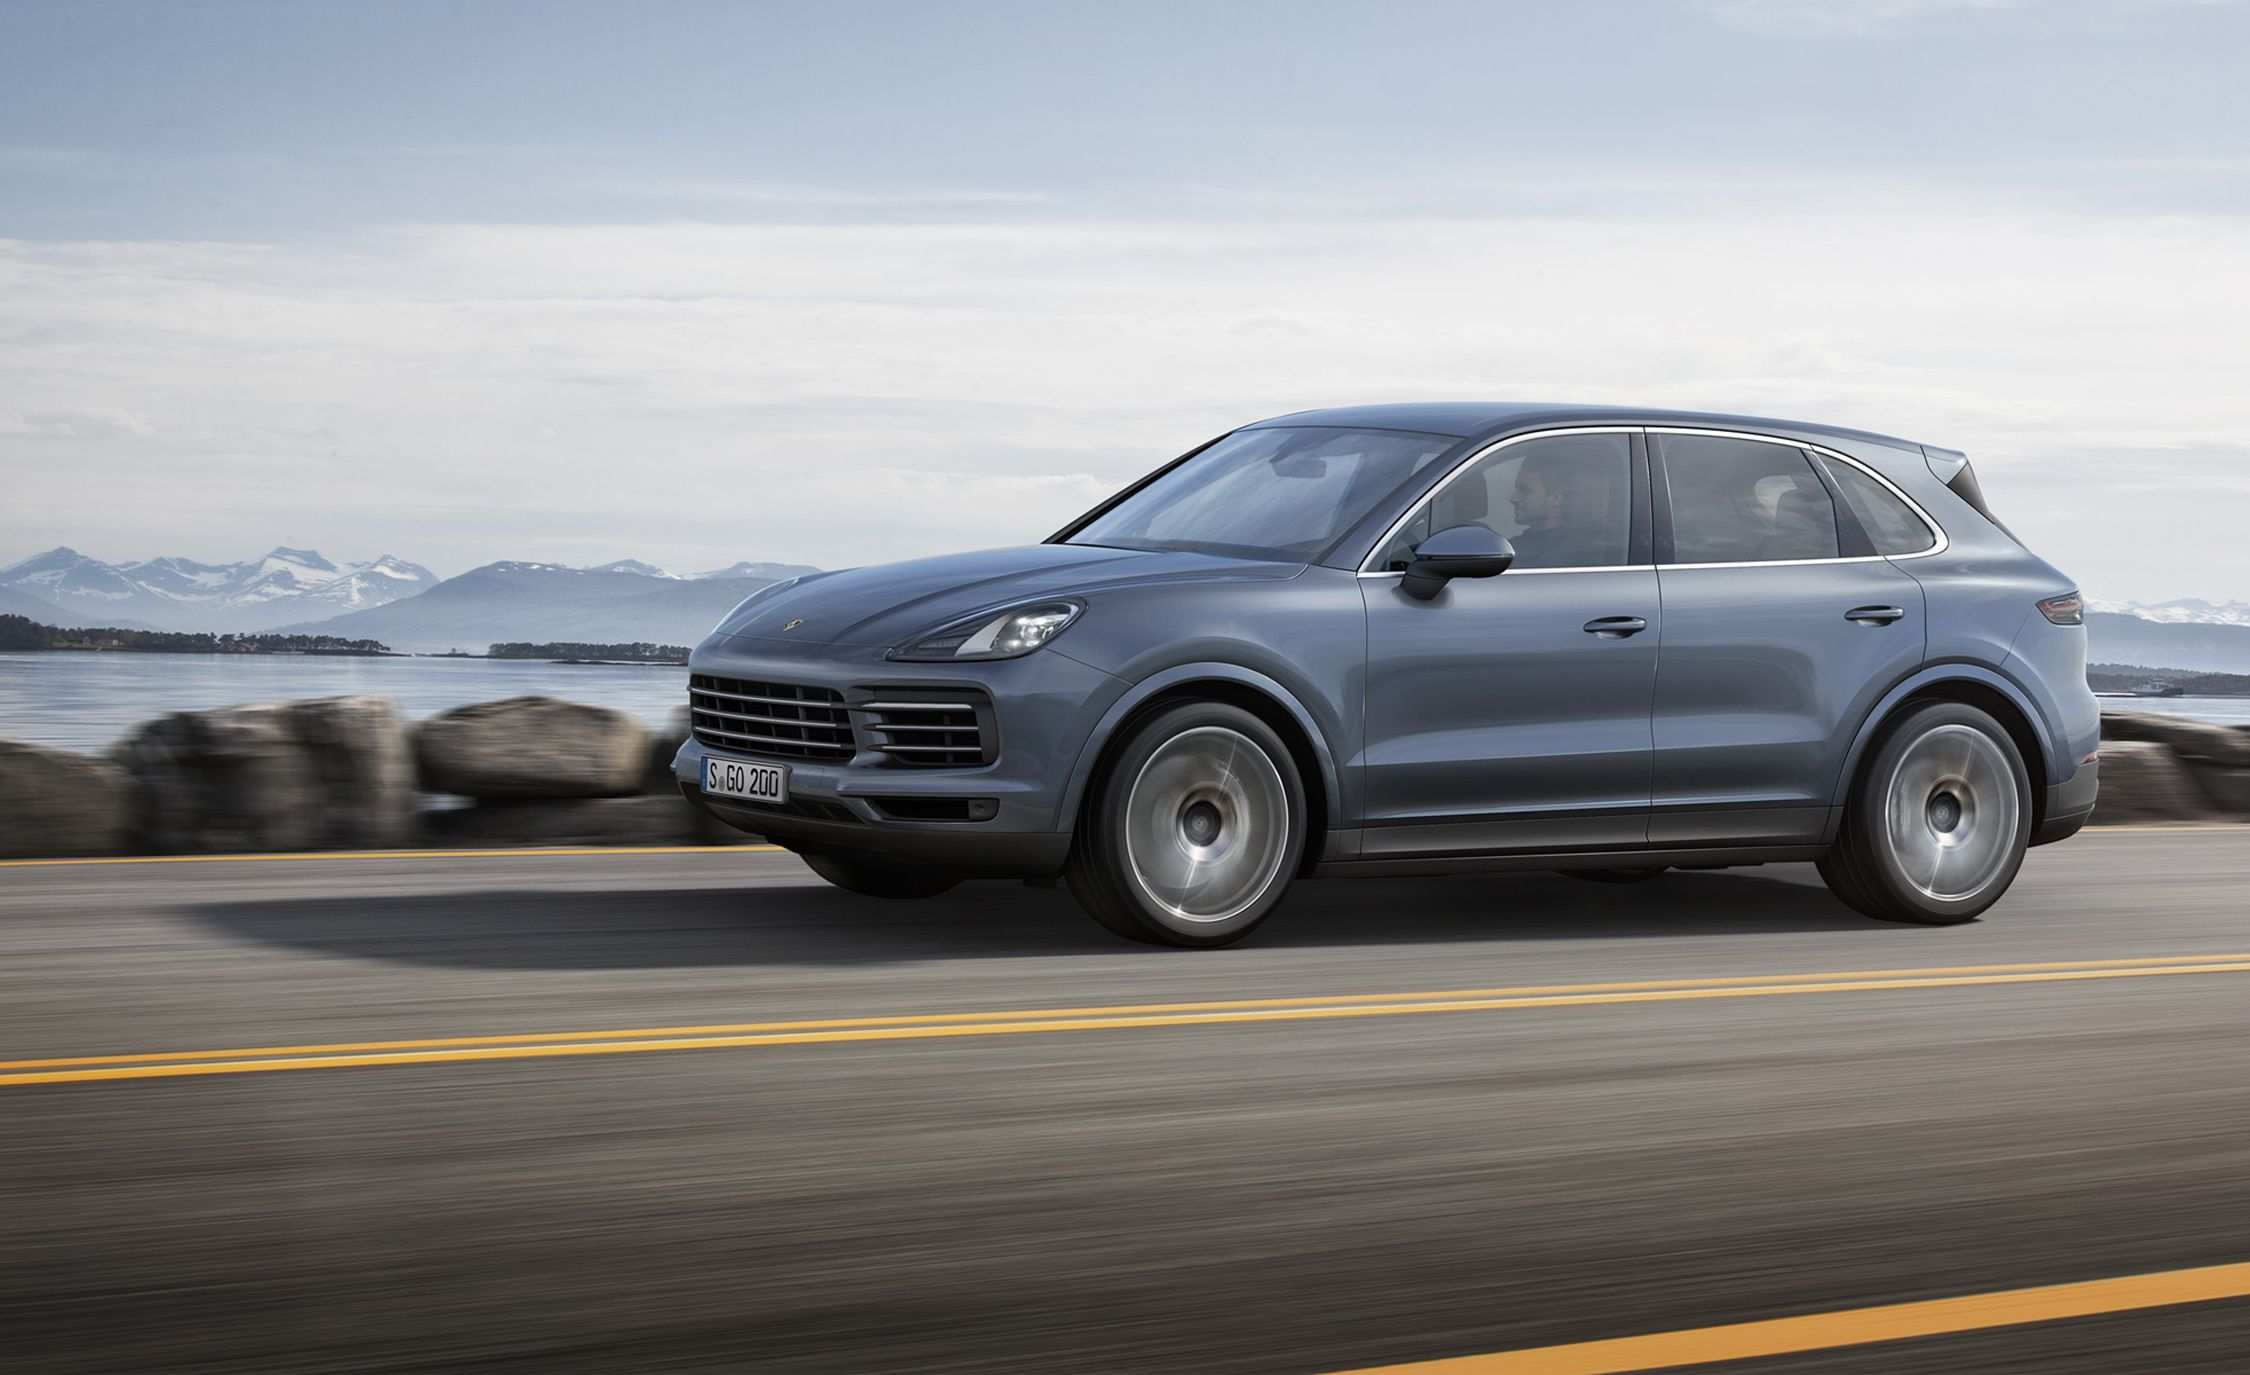 13 Concept of 2019 Porsche Cayenne Specs and Review with 2019 Porsche Cayenne